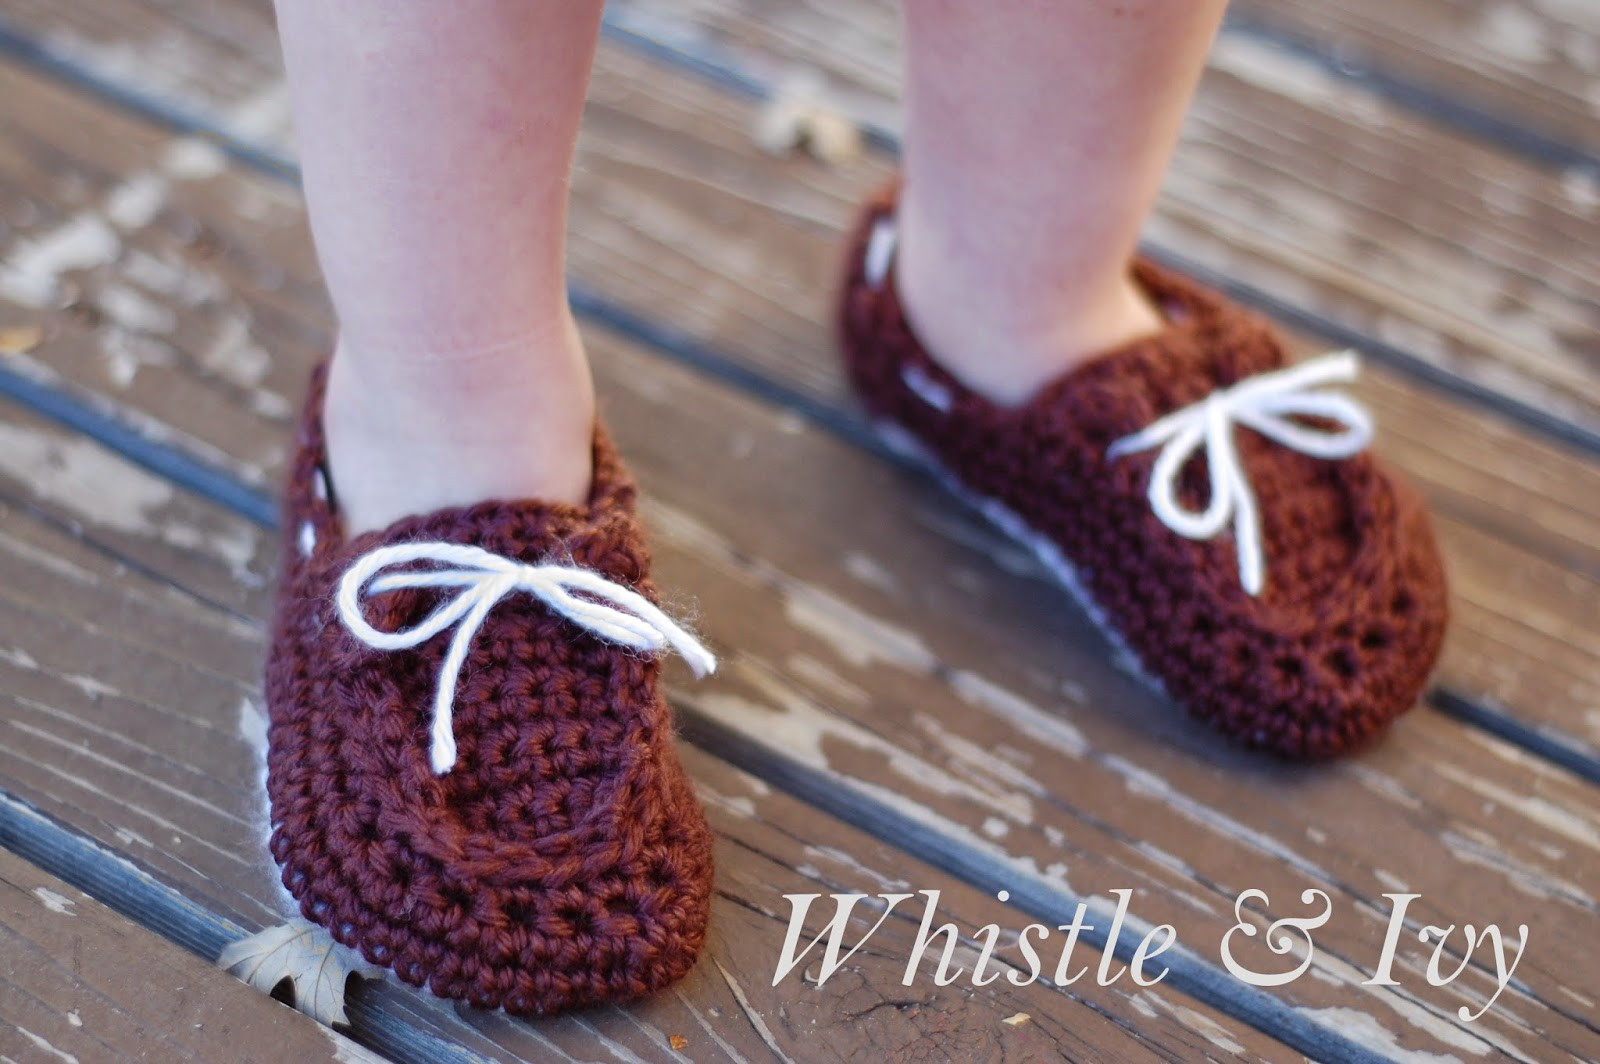 New toddler Boat Slippers Crochet Pattern Whistle and Ivy Crochet toddler Slippers Of Delightful 50 Images Crochet toddler Slippers